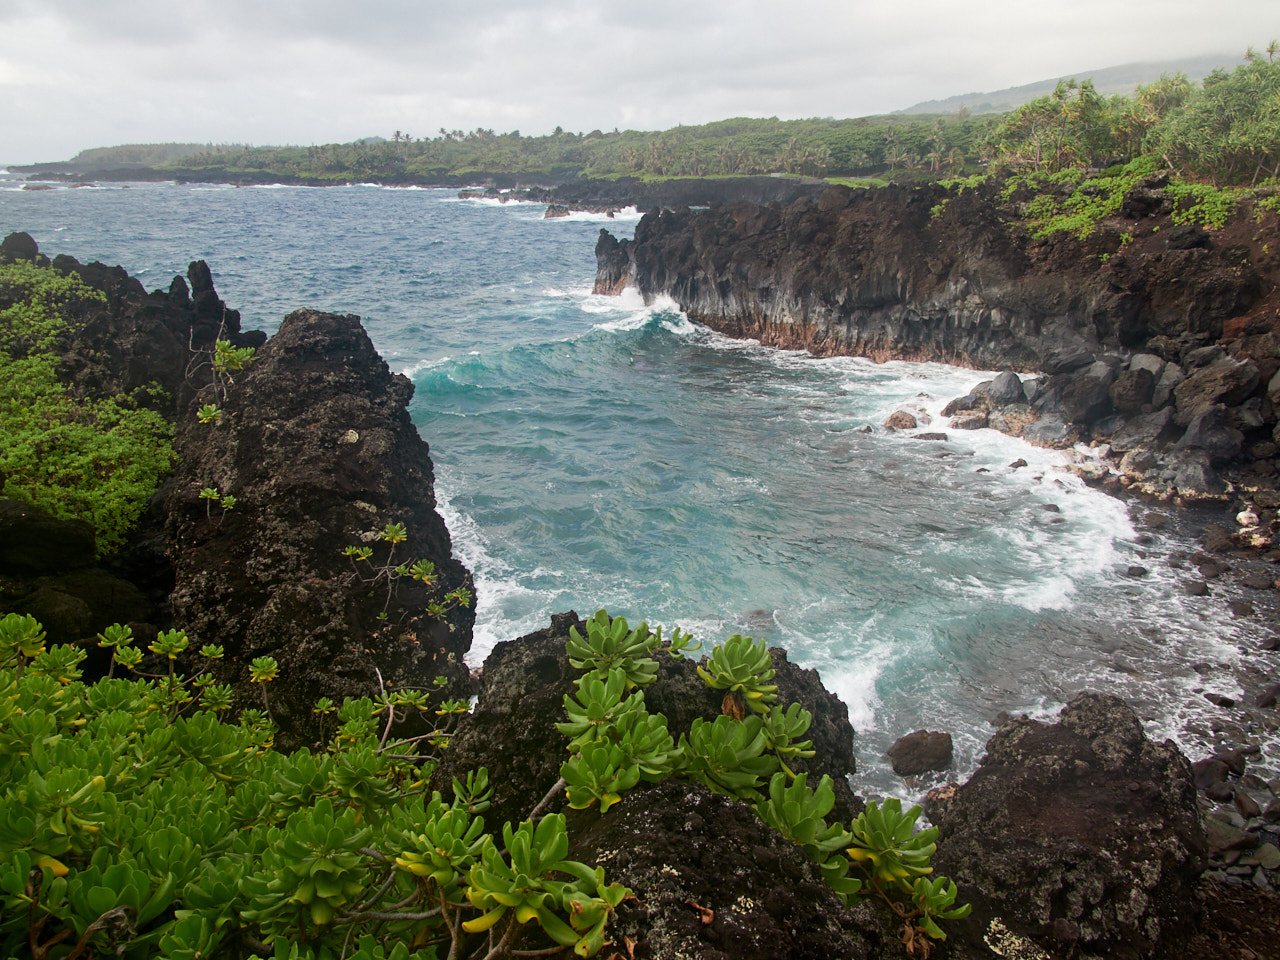 One of the Black Sand Beaches within the Park Boundaries